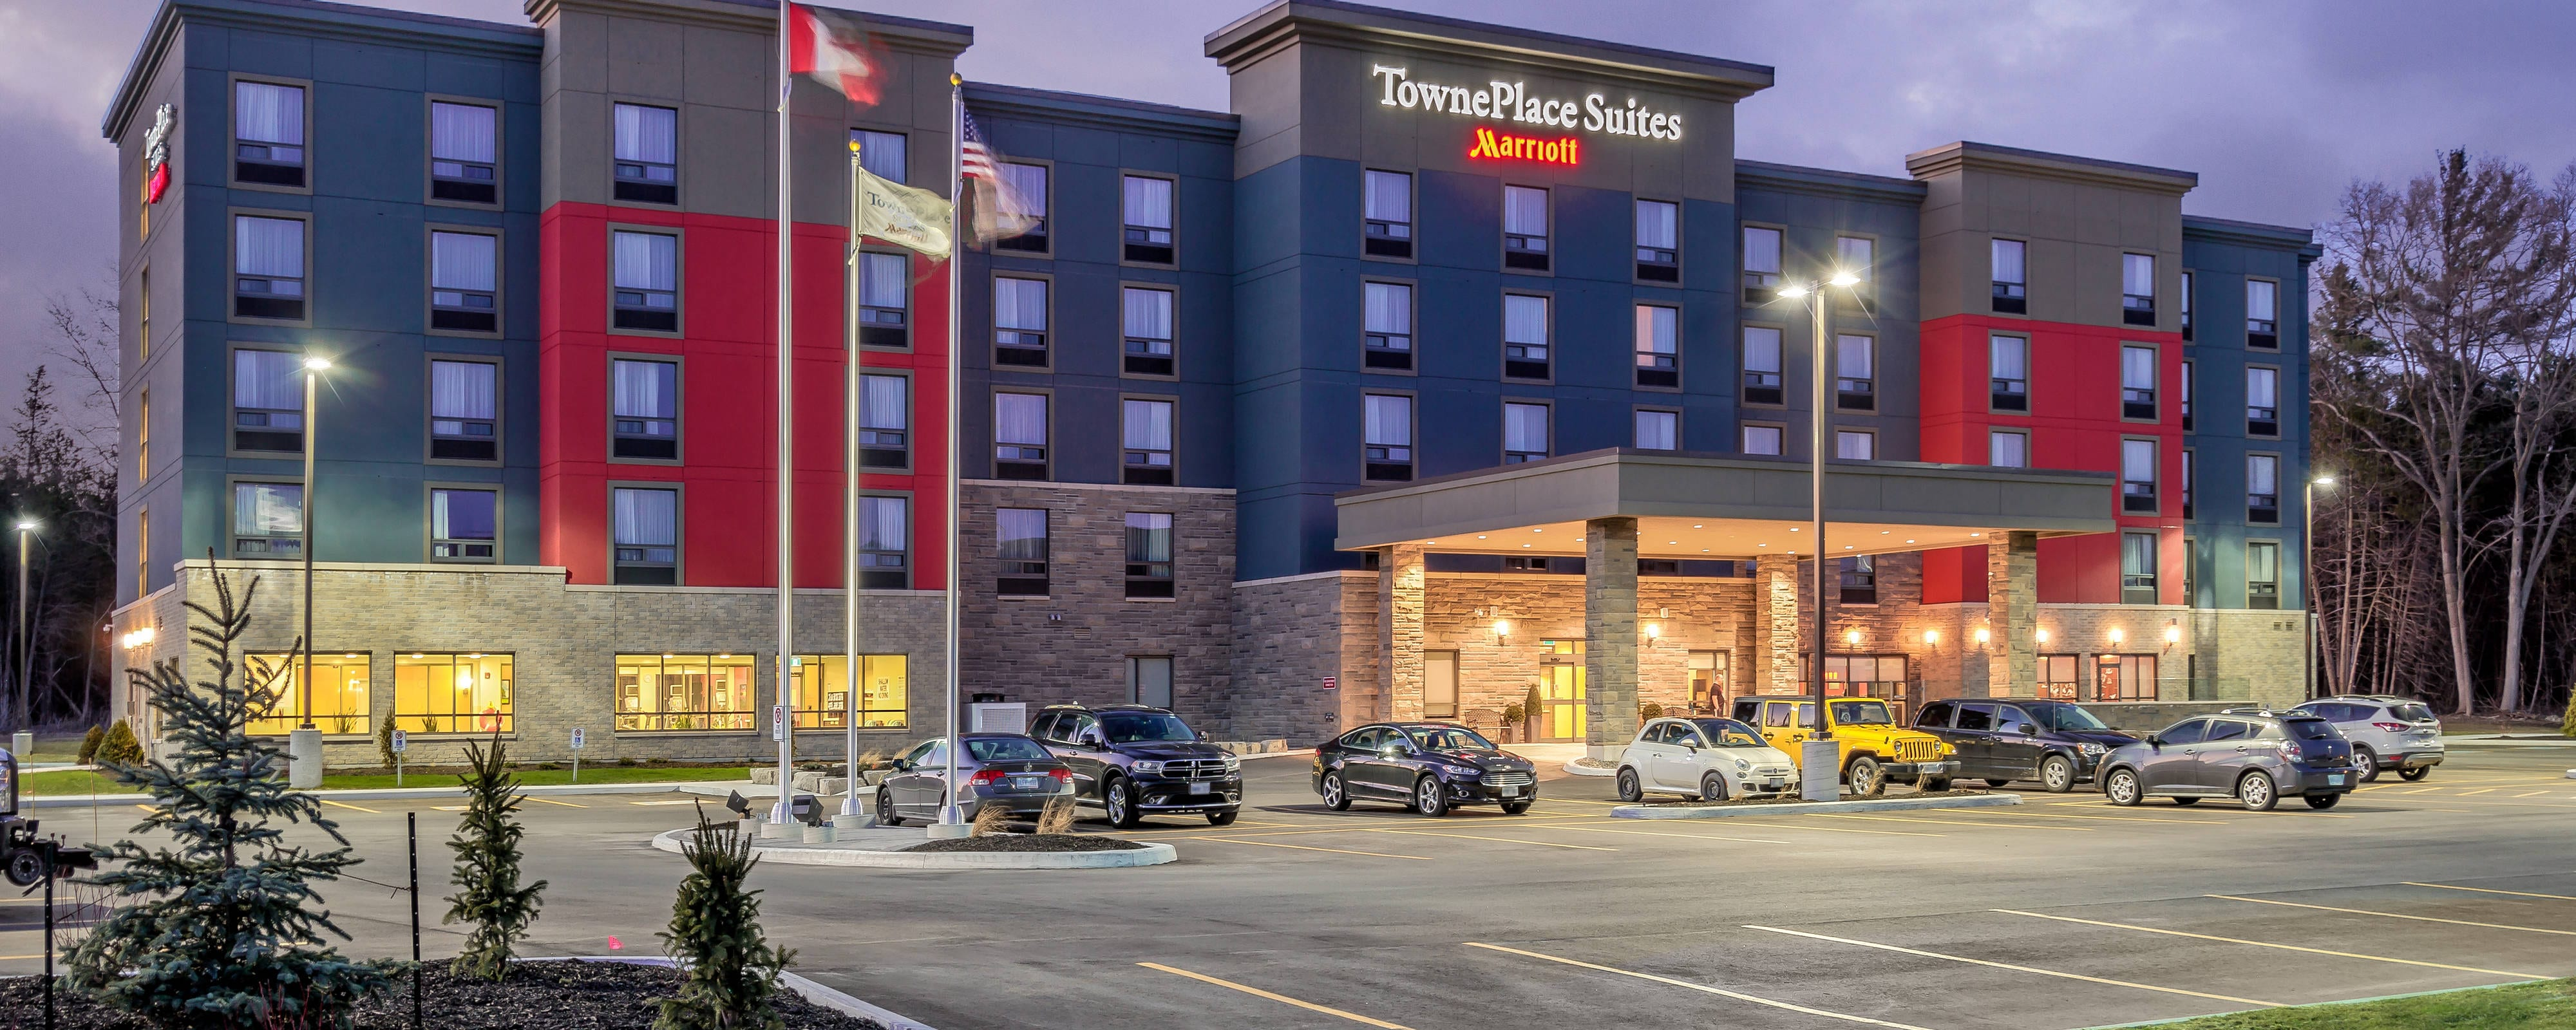 TowePlace Suites Belleville